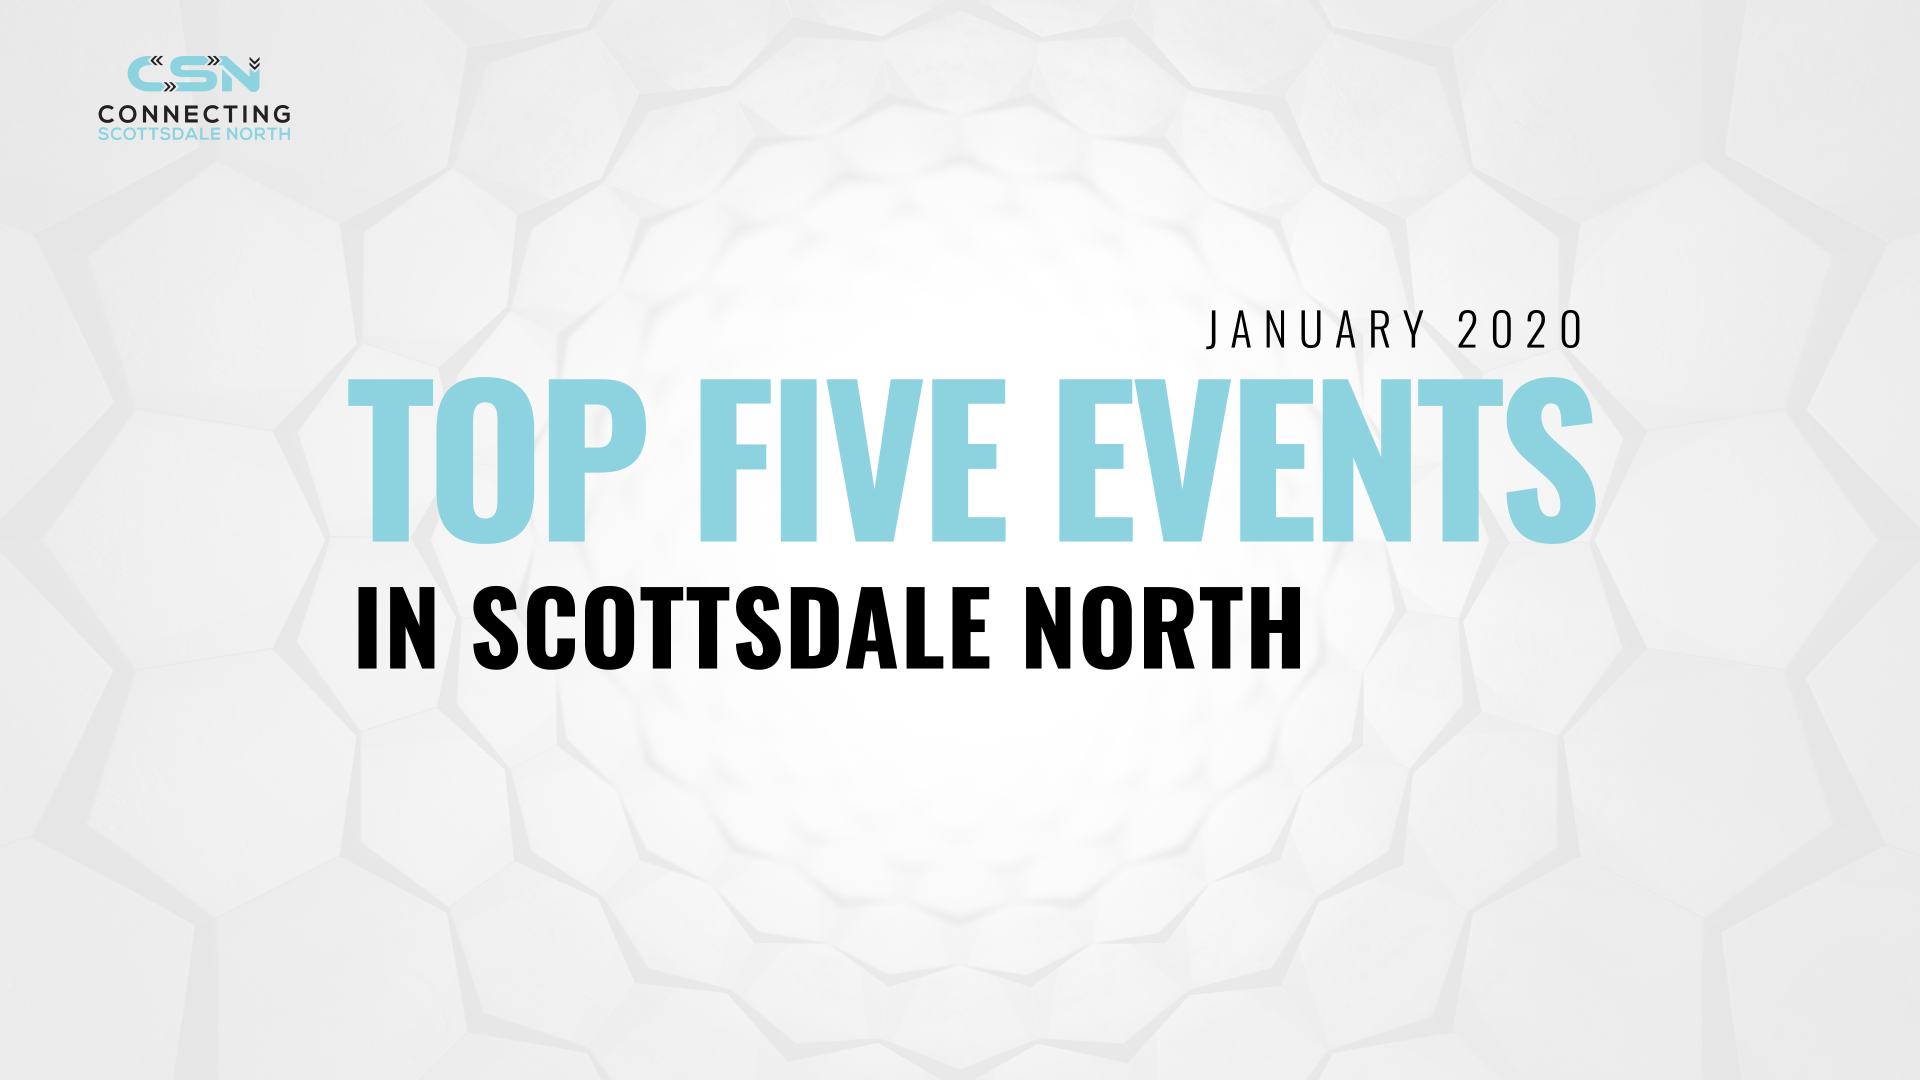 Scottsdale North Events January 2020